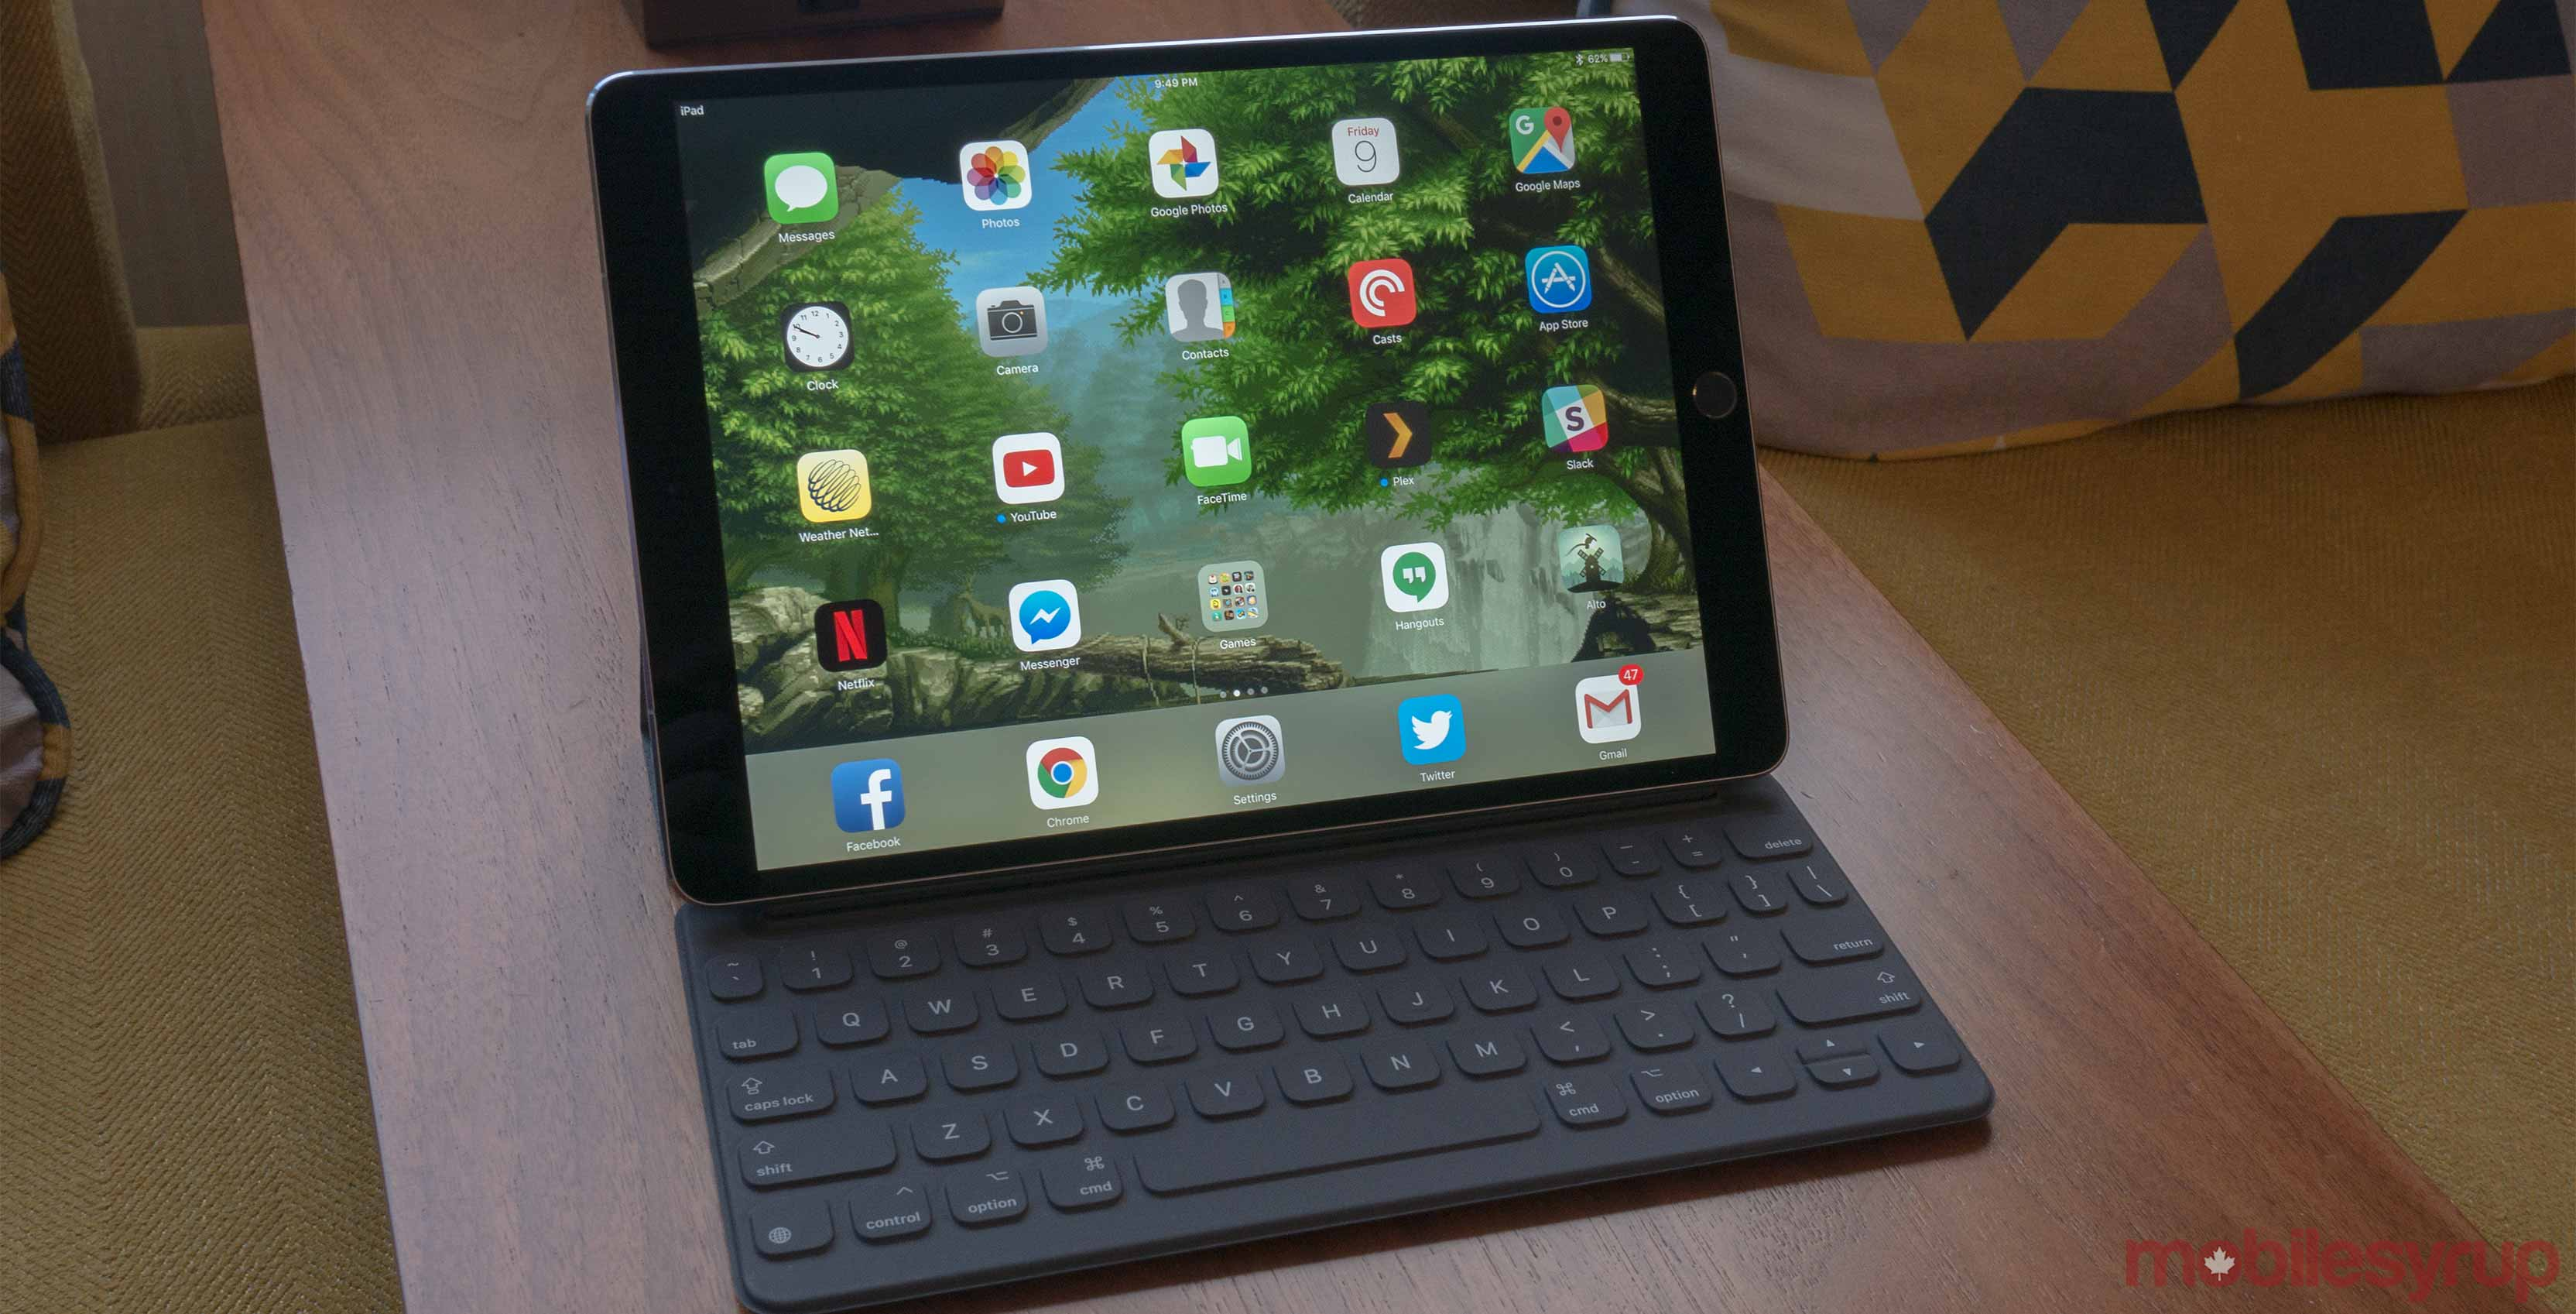 It looks like the new iPad Pro really will ditch Lightning for USB-C